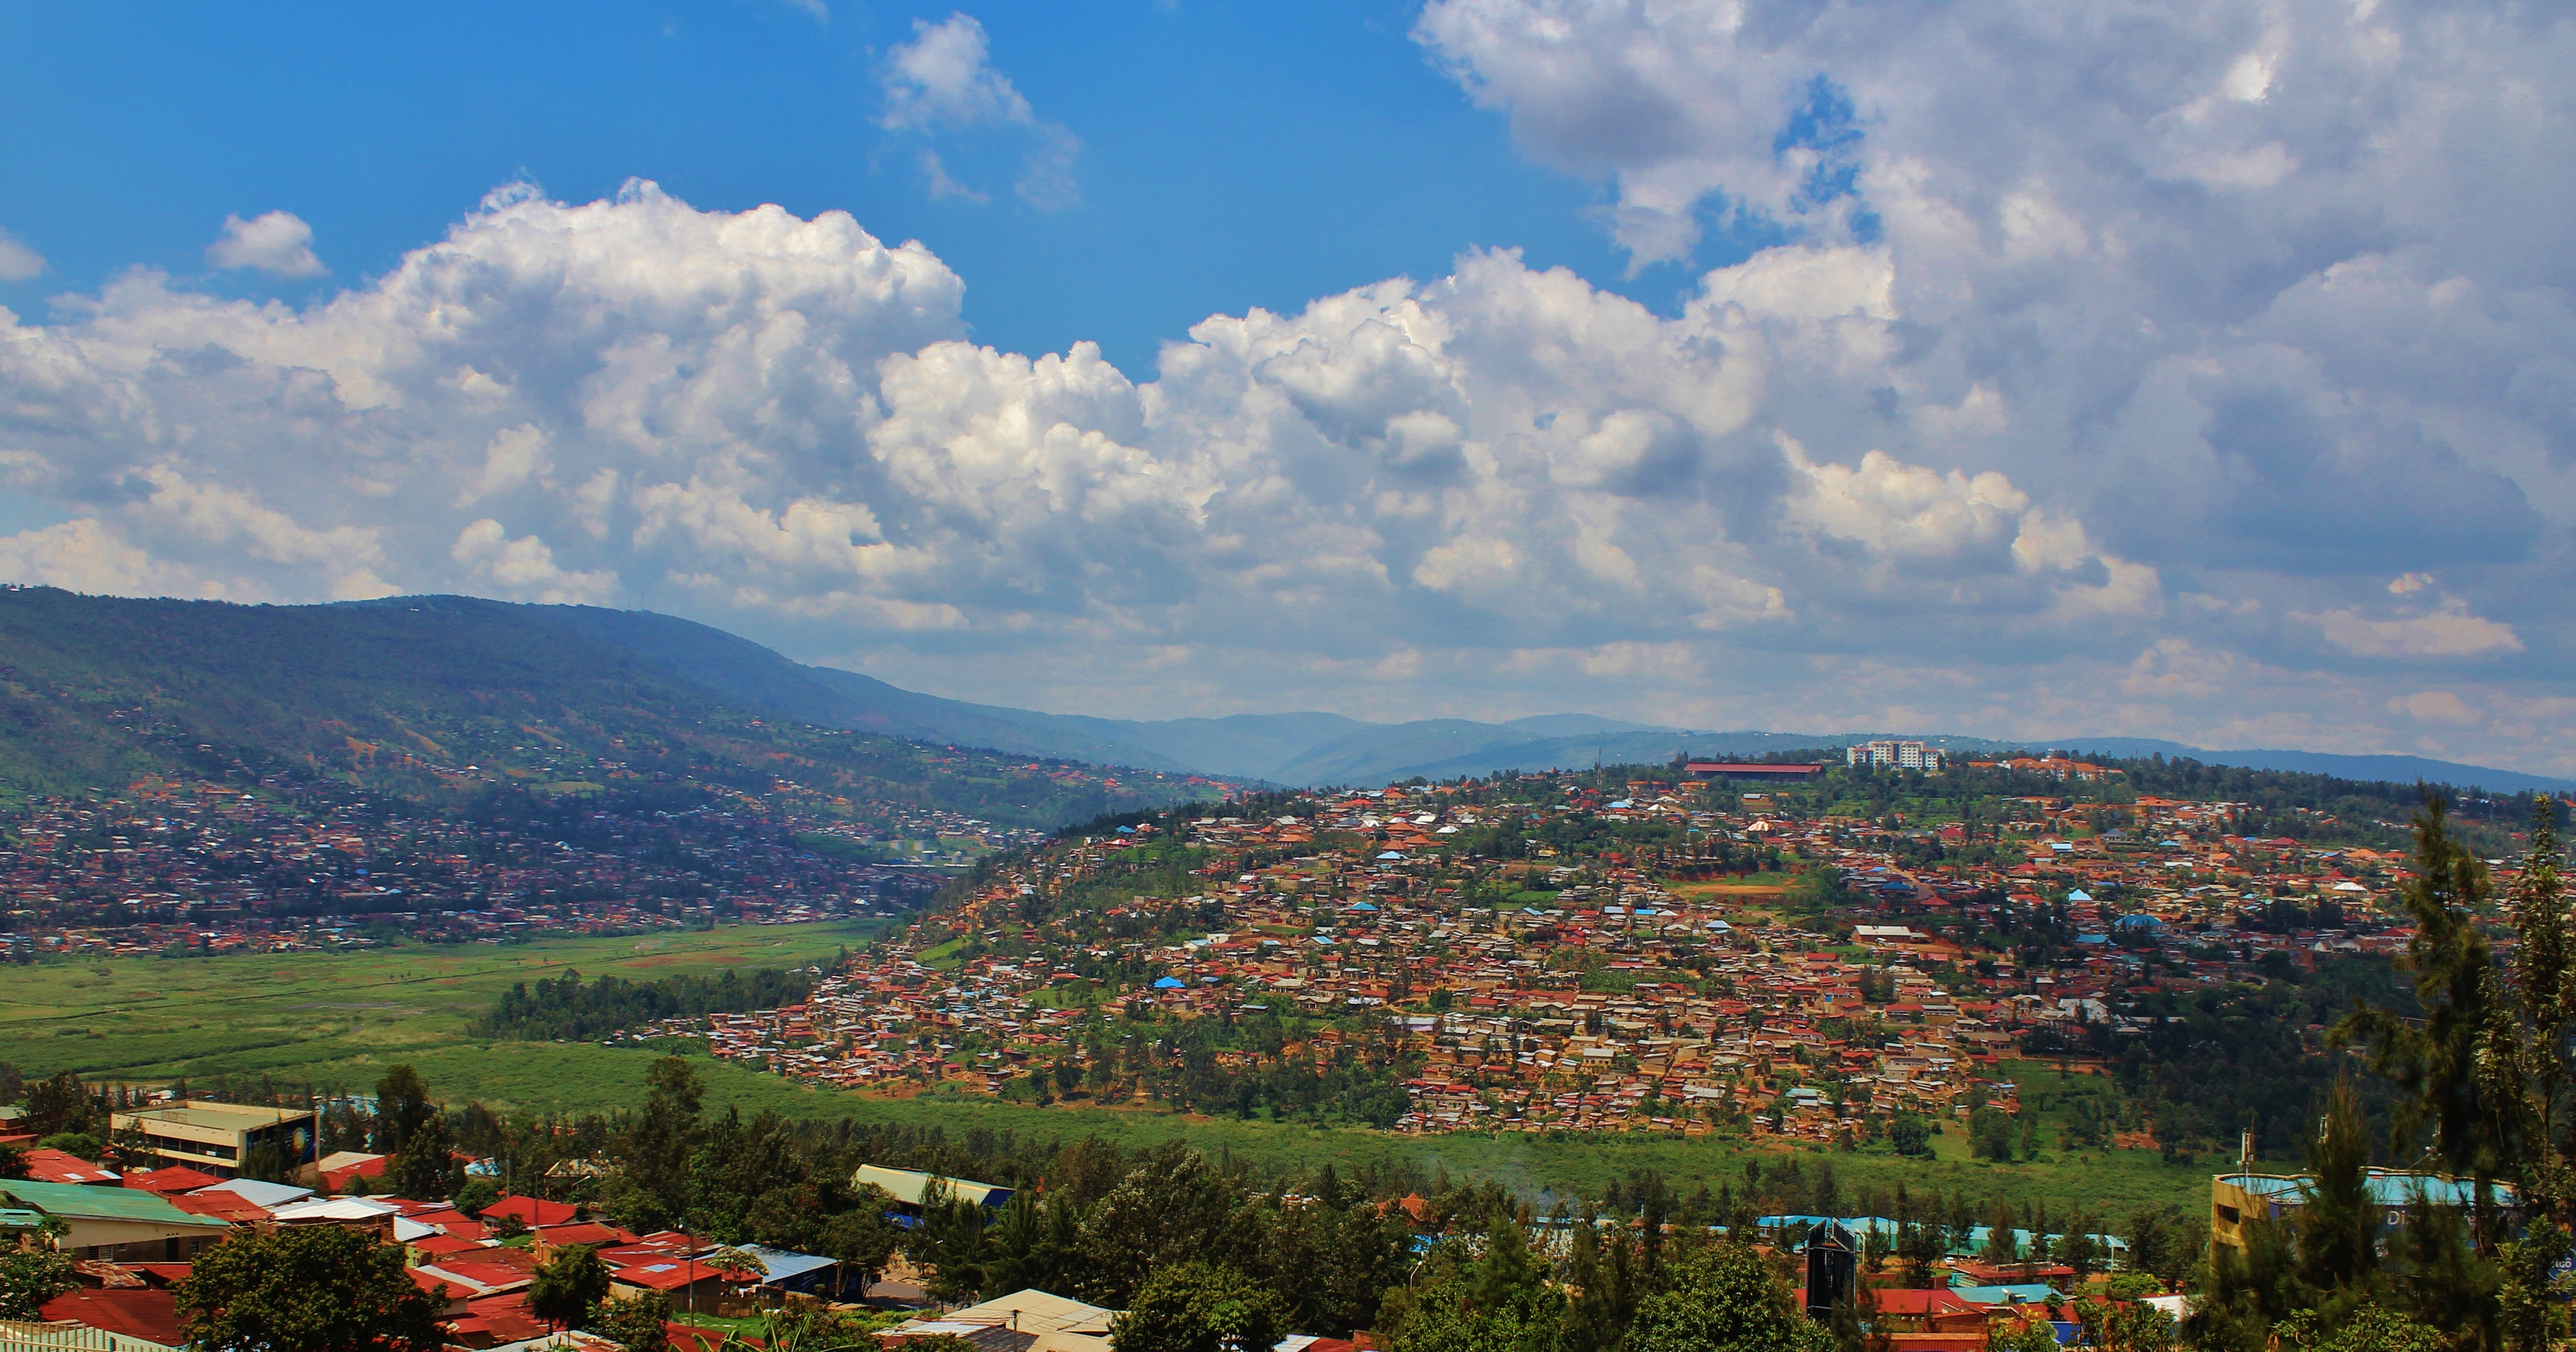 Kigali has a decent number of the 1,000 hills Rwanda is said to have